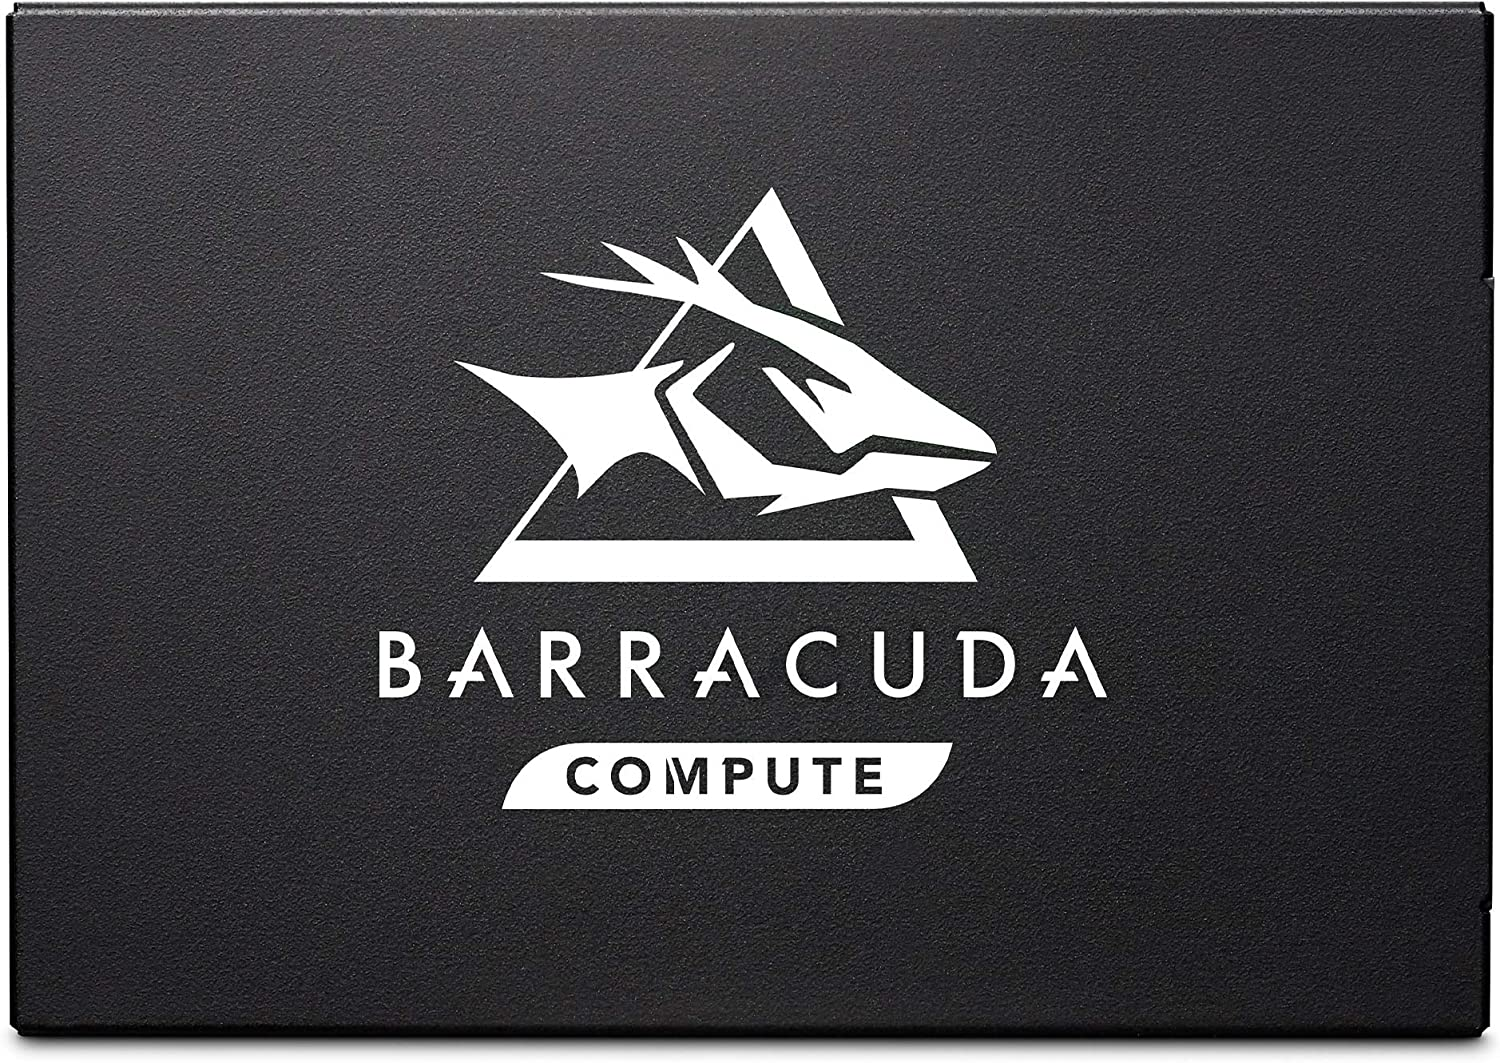 Seagate BarraCuda Q1 SSD 480GB Internal Solid State Drive – 2.5 Inch SATA 6Gb/s for PC Laptop Upgrade 3D QLC NAND (ZA480CV1A001)